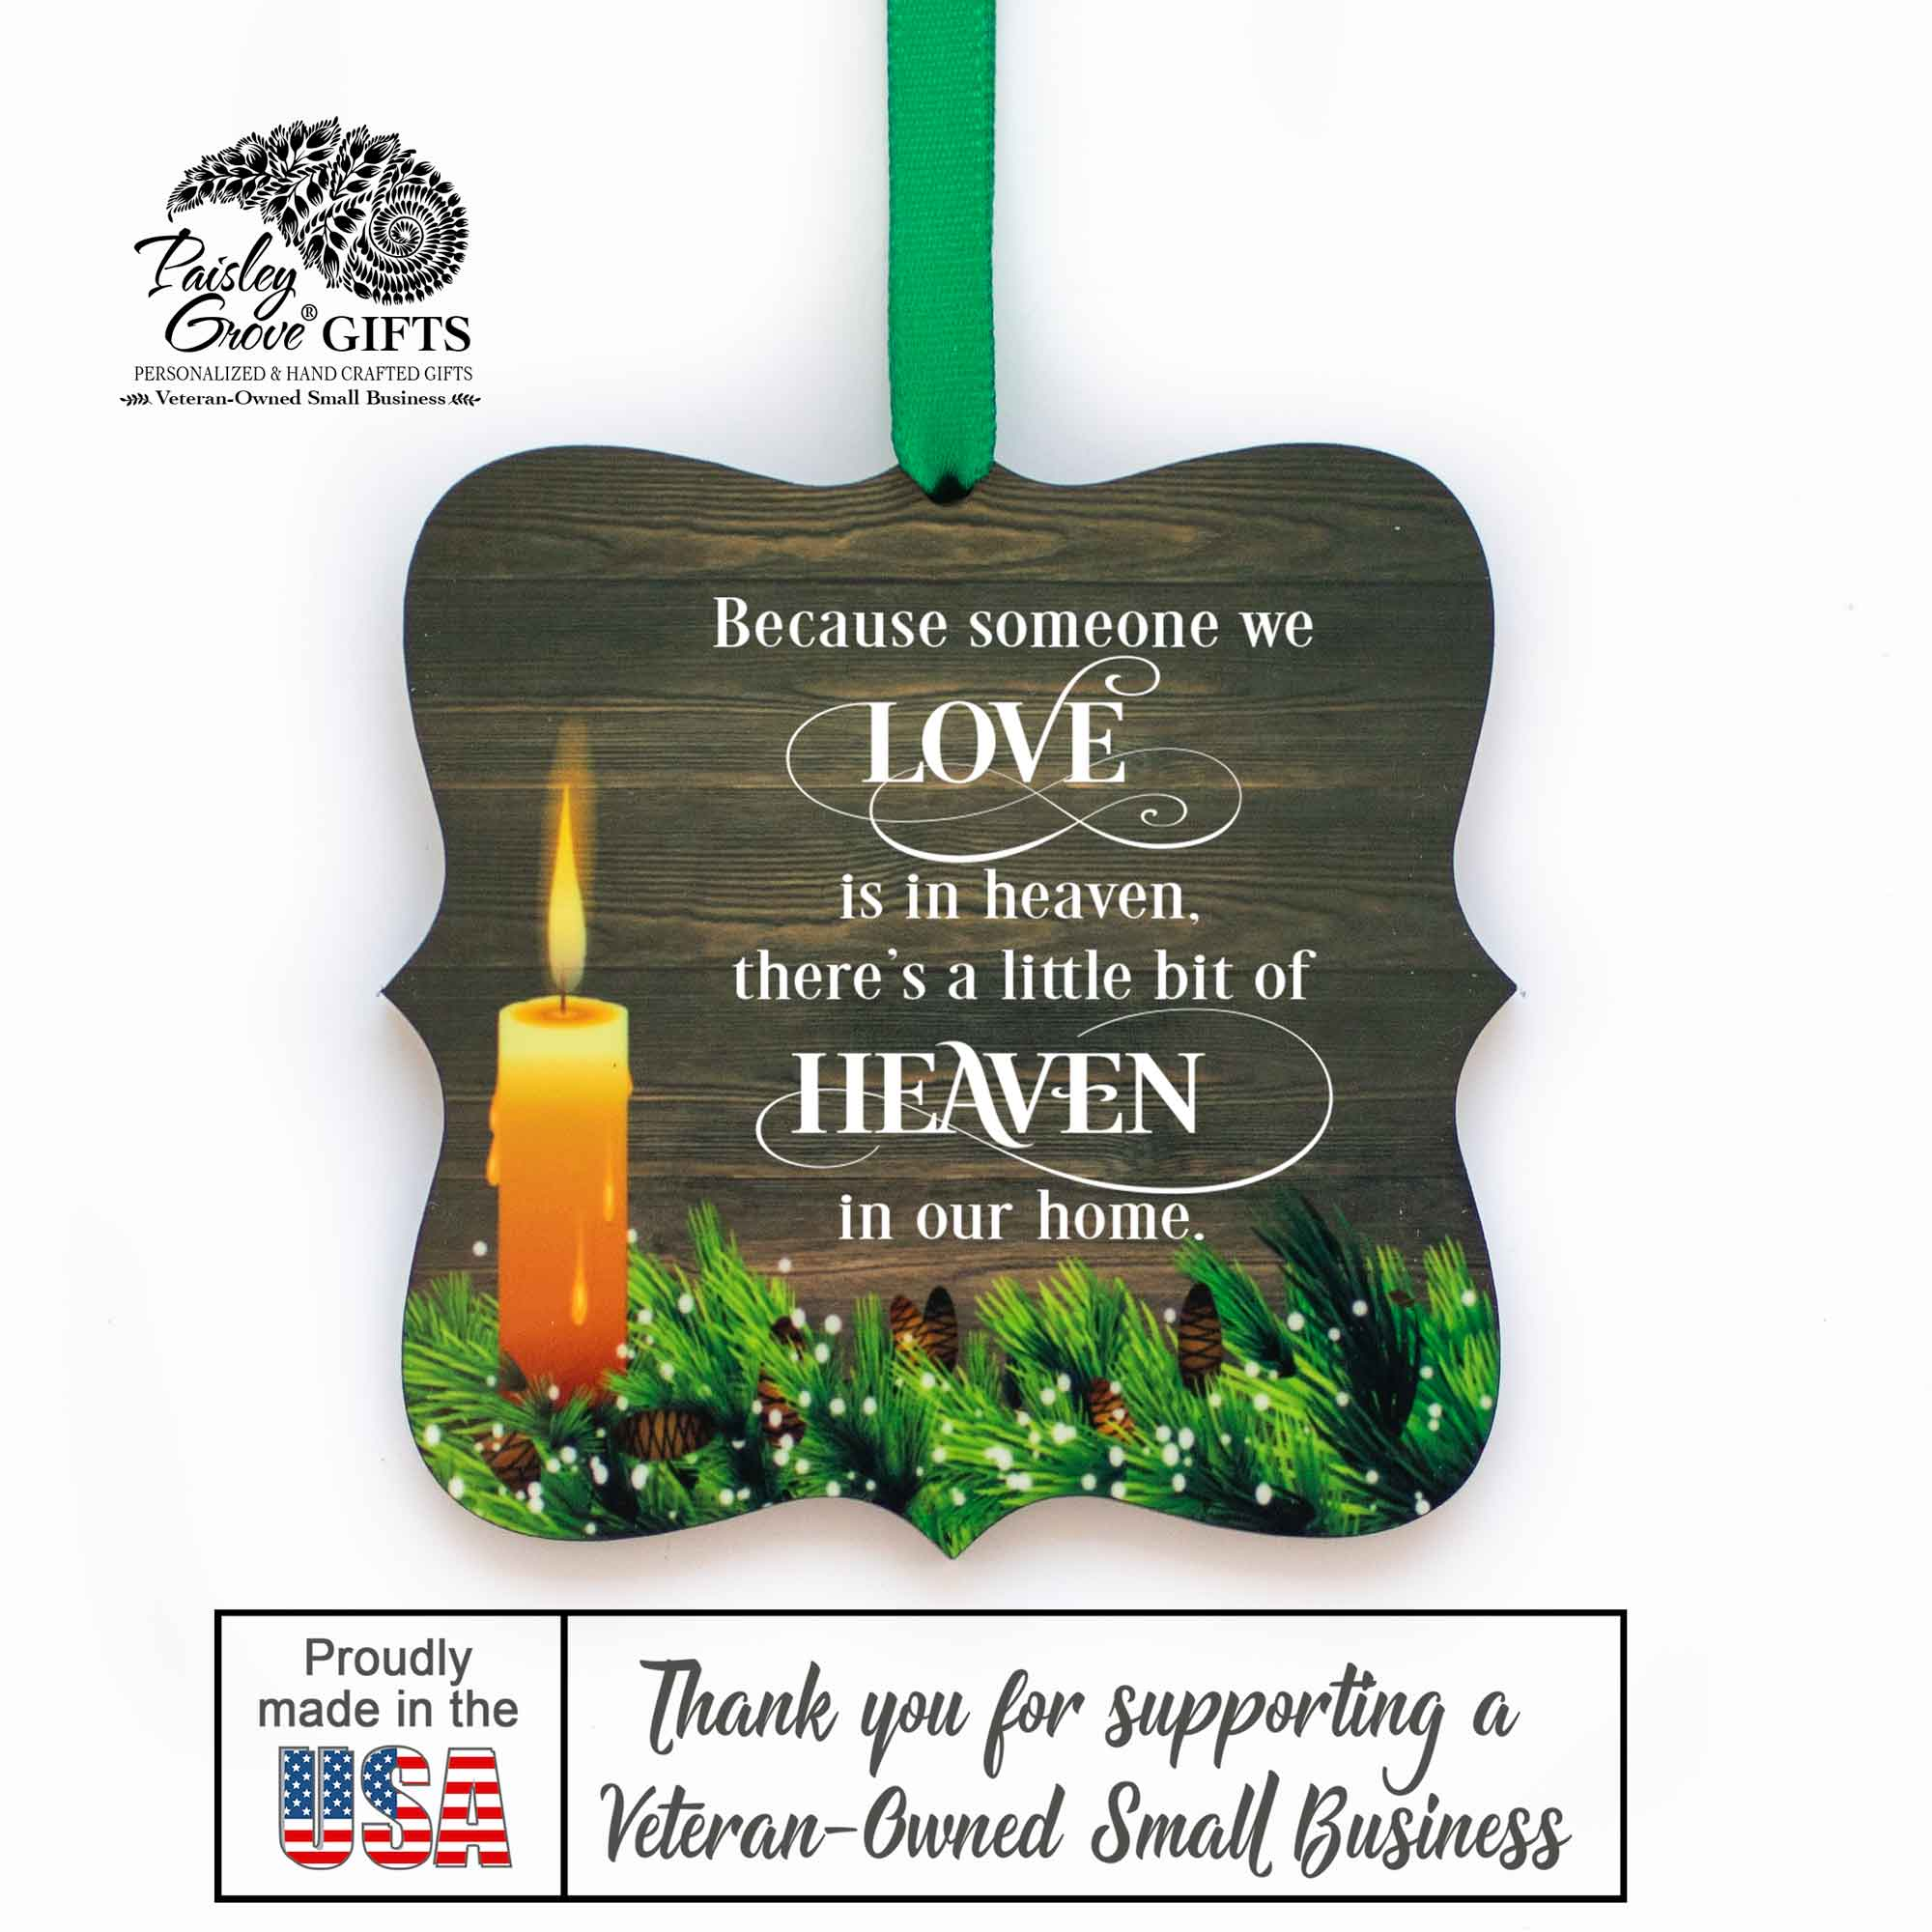 CopyrightPaisleyGroveGIFTS S508a In Loving Memory Christmas Ornament Bereavement Gift Made in the USA